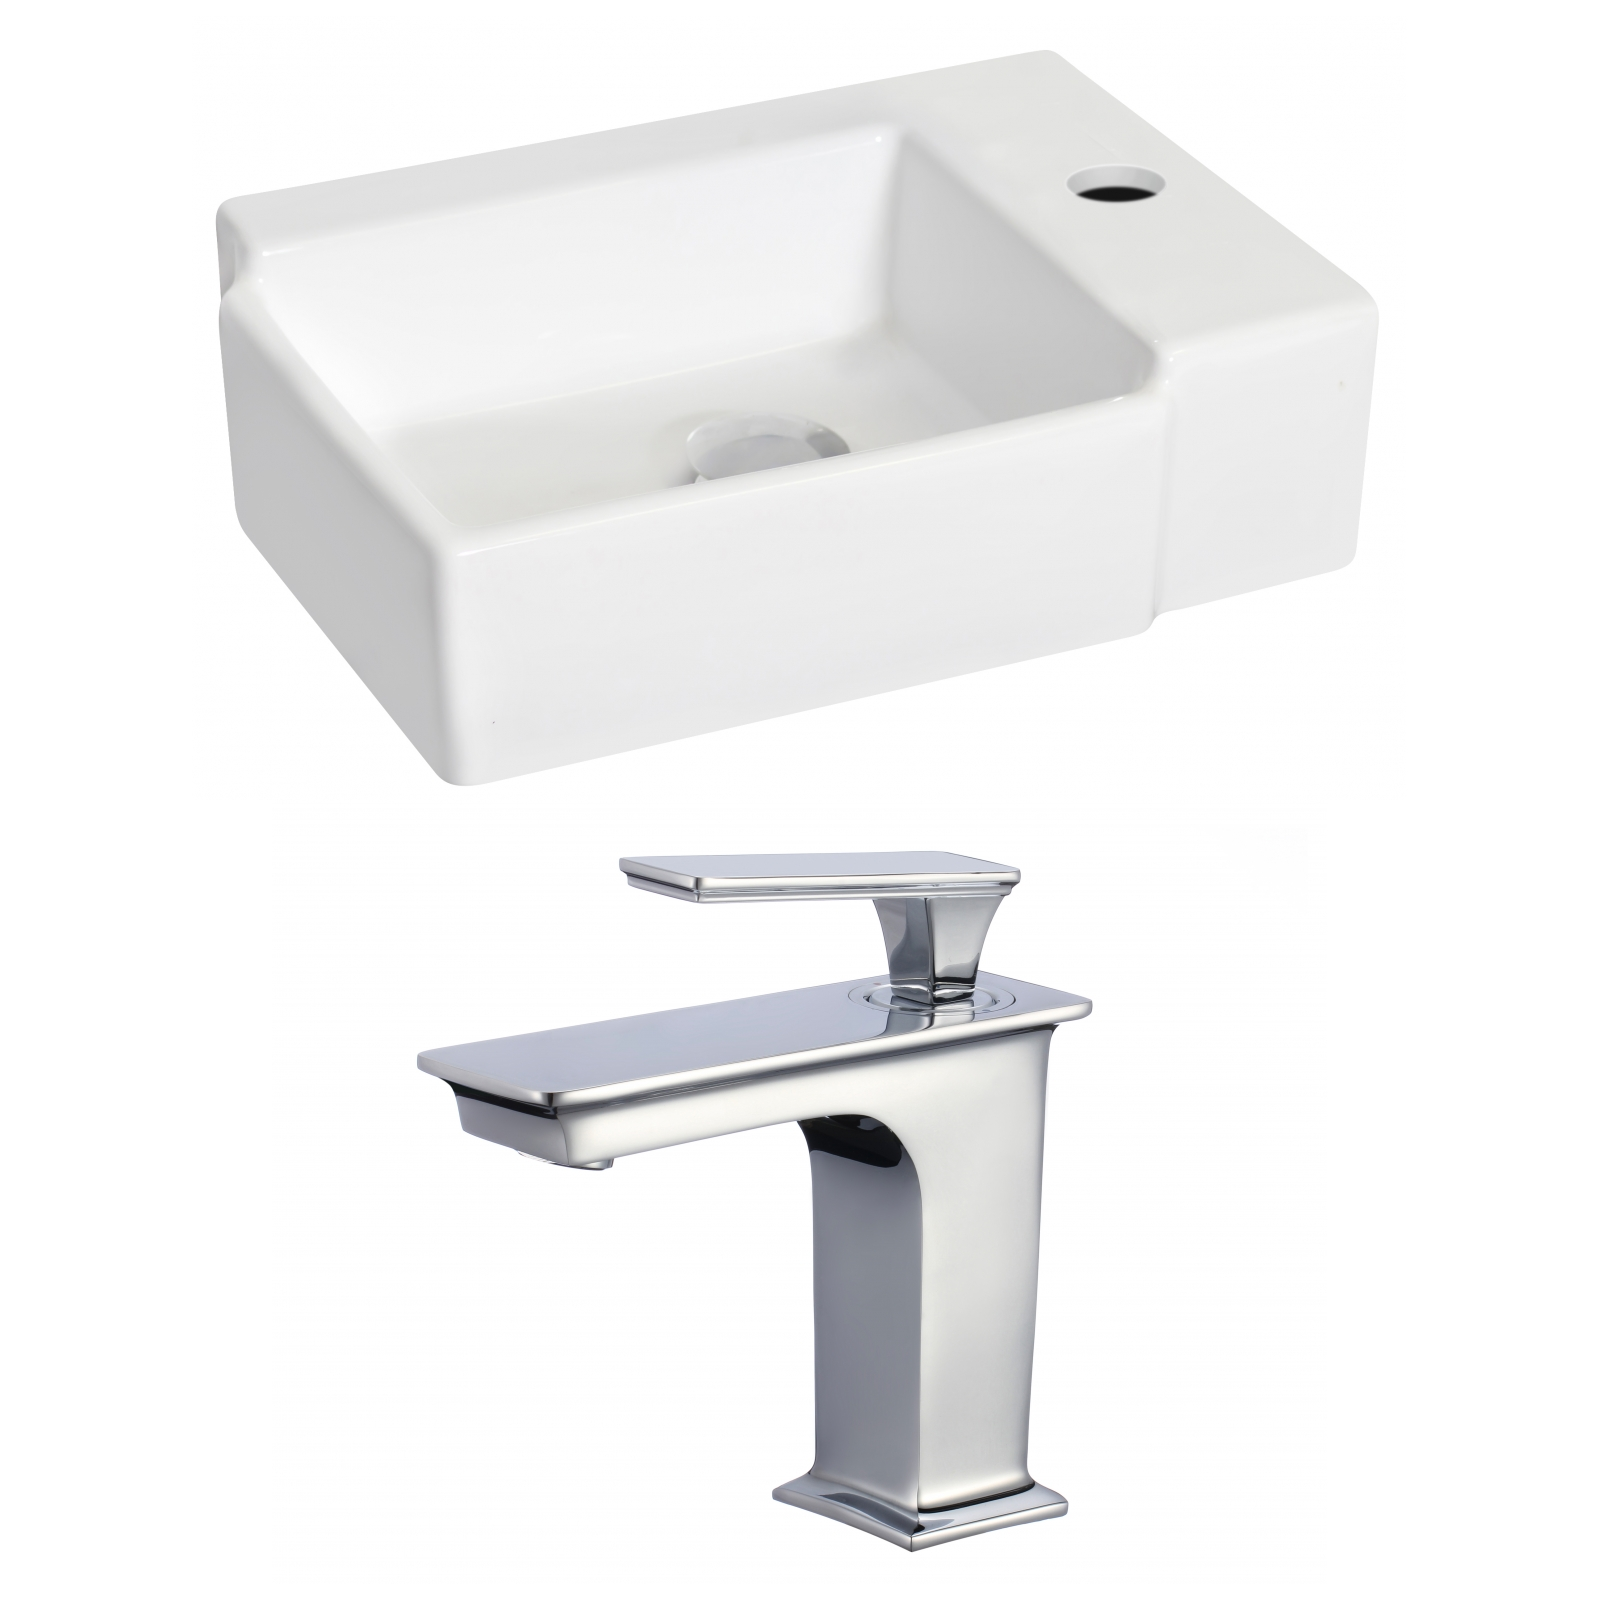 padlords vessel us sink i bathroom markh of faucets excellent faucet tall sinks